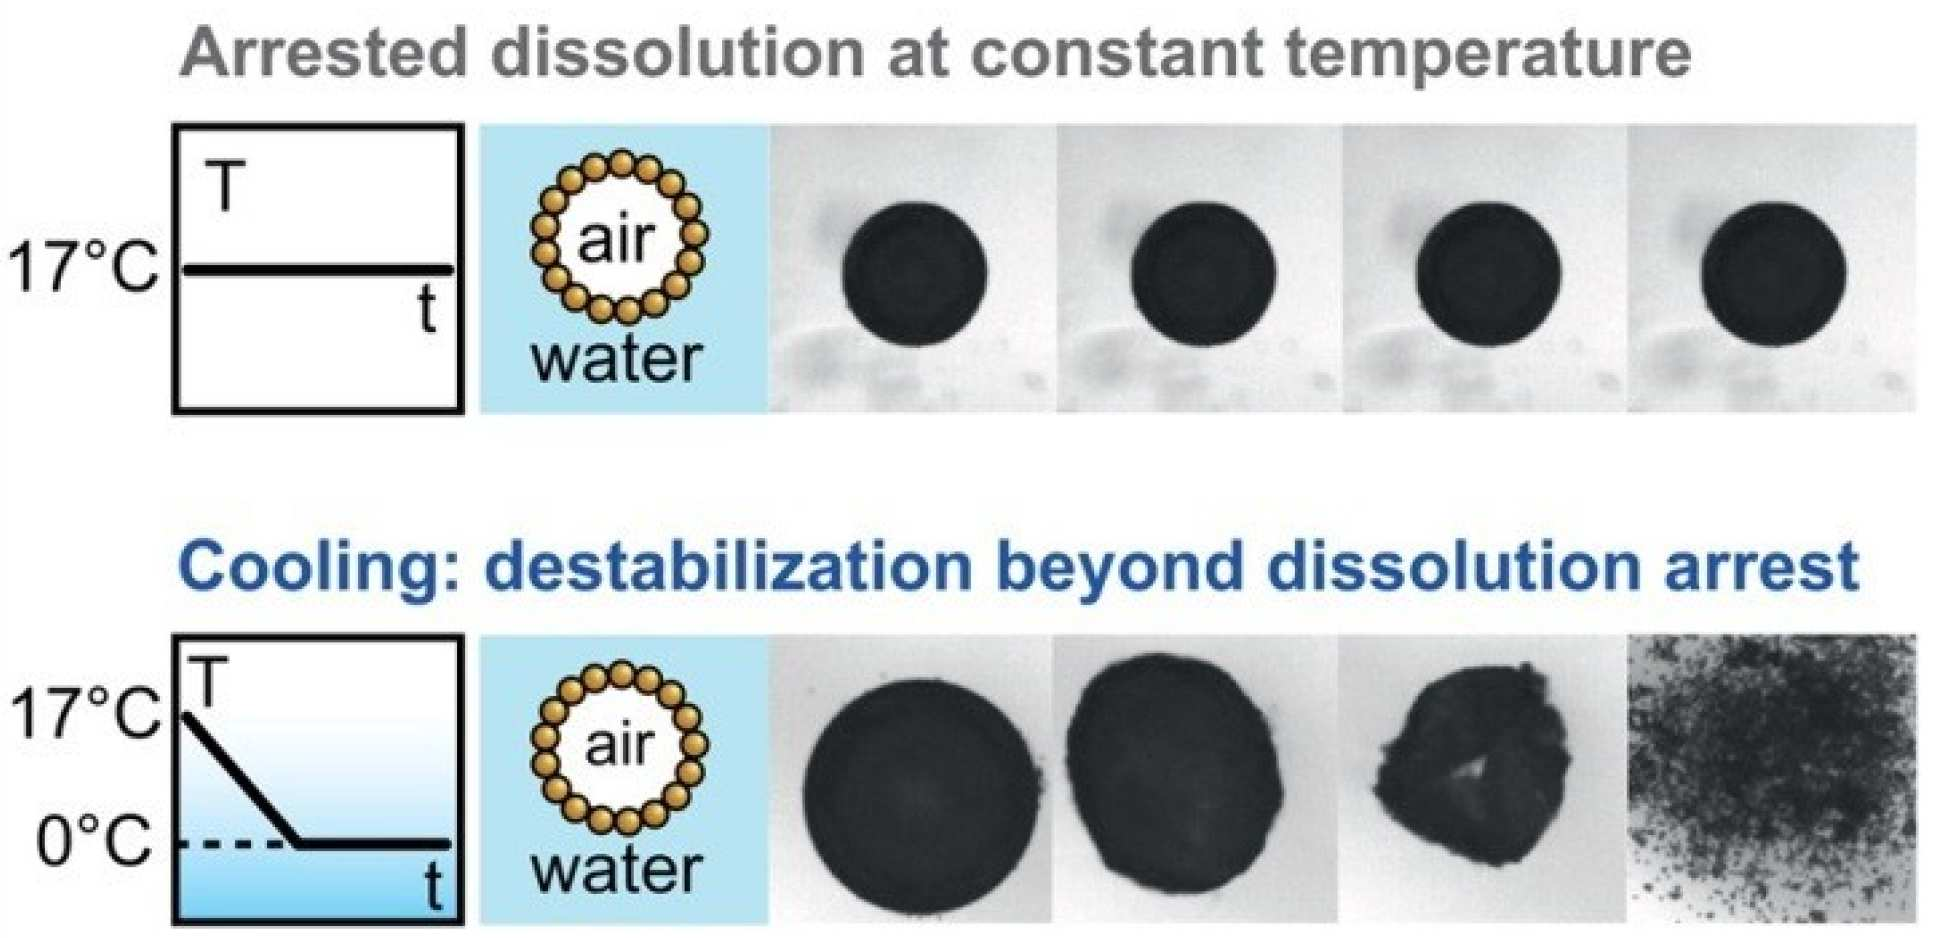 V. Poulichet,  V. Garbin, Cooling particle-coated bubbles: destabilization beyond dissolution arrest, Langmuir 31, 12035 (2015).